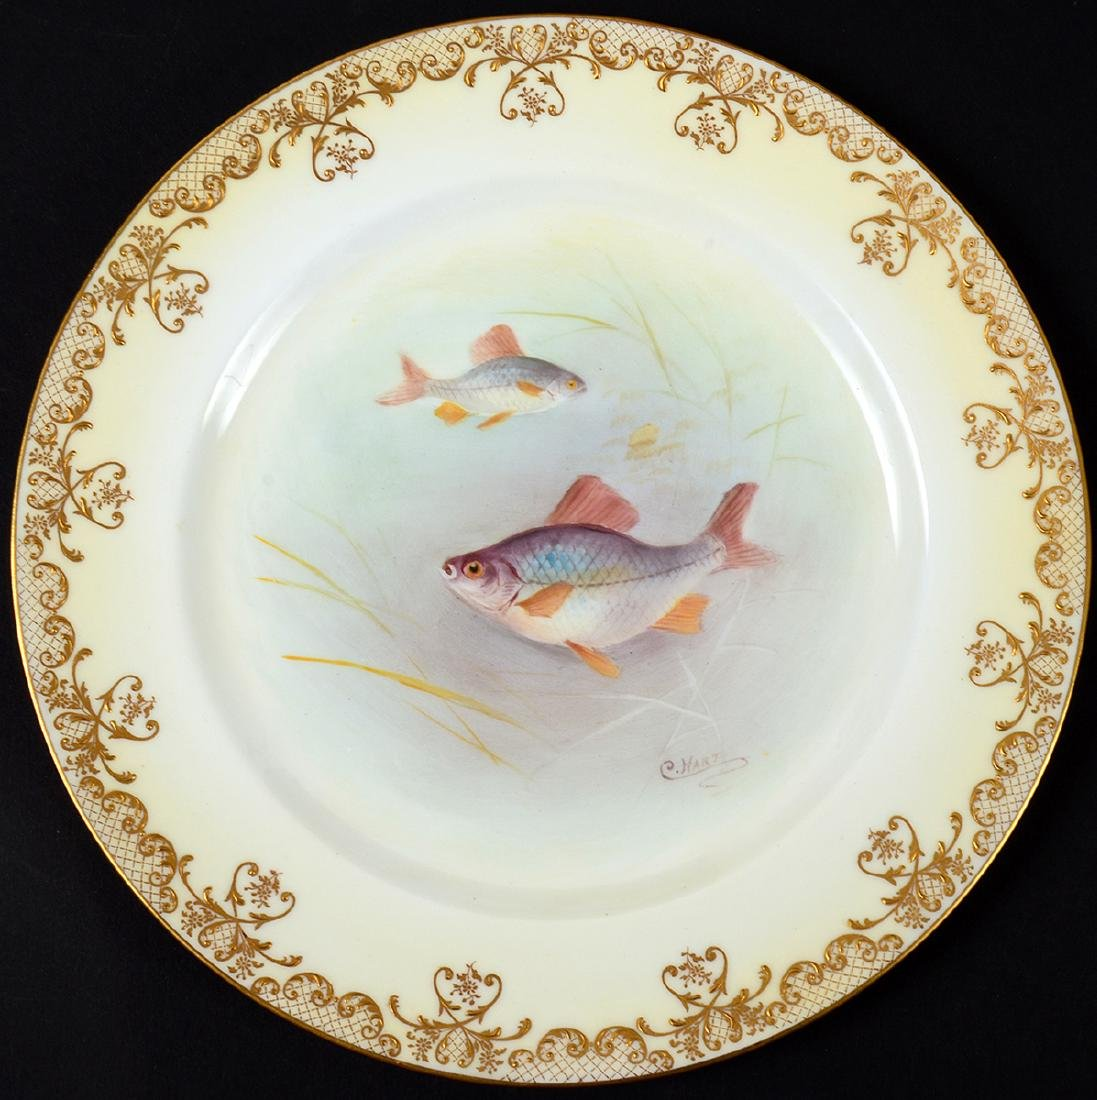 SET OF TEN ROYAL DOULTON PORCELAIN FISH PLATES - 7